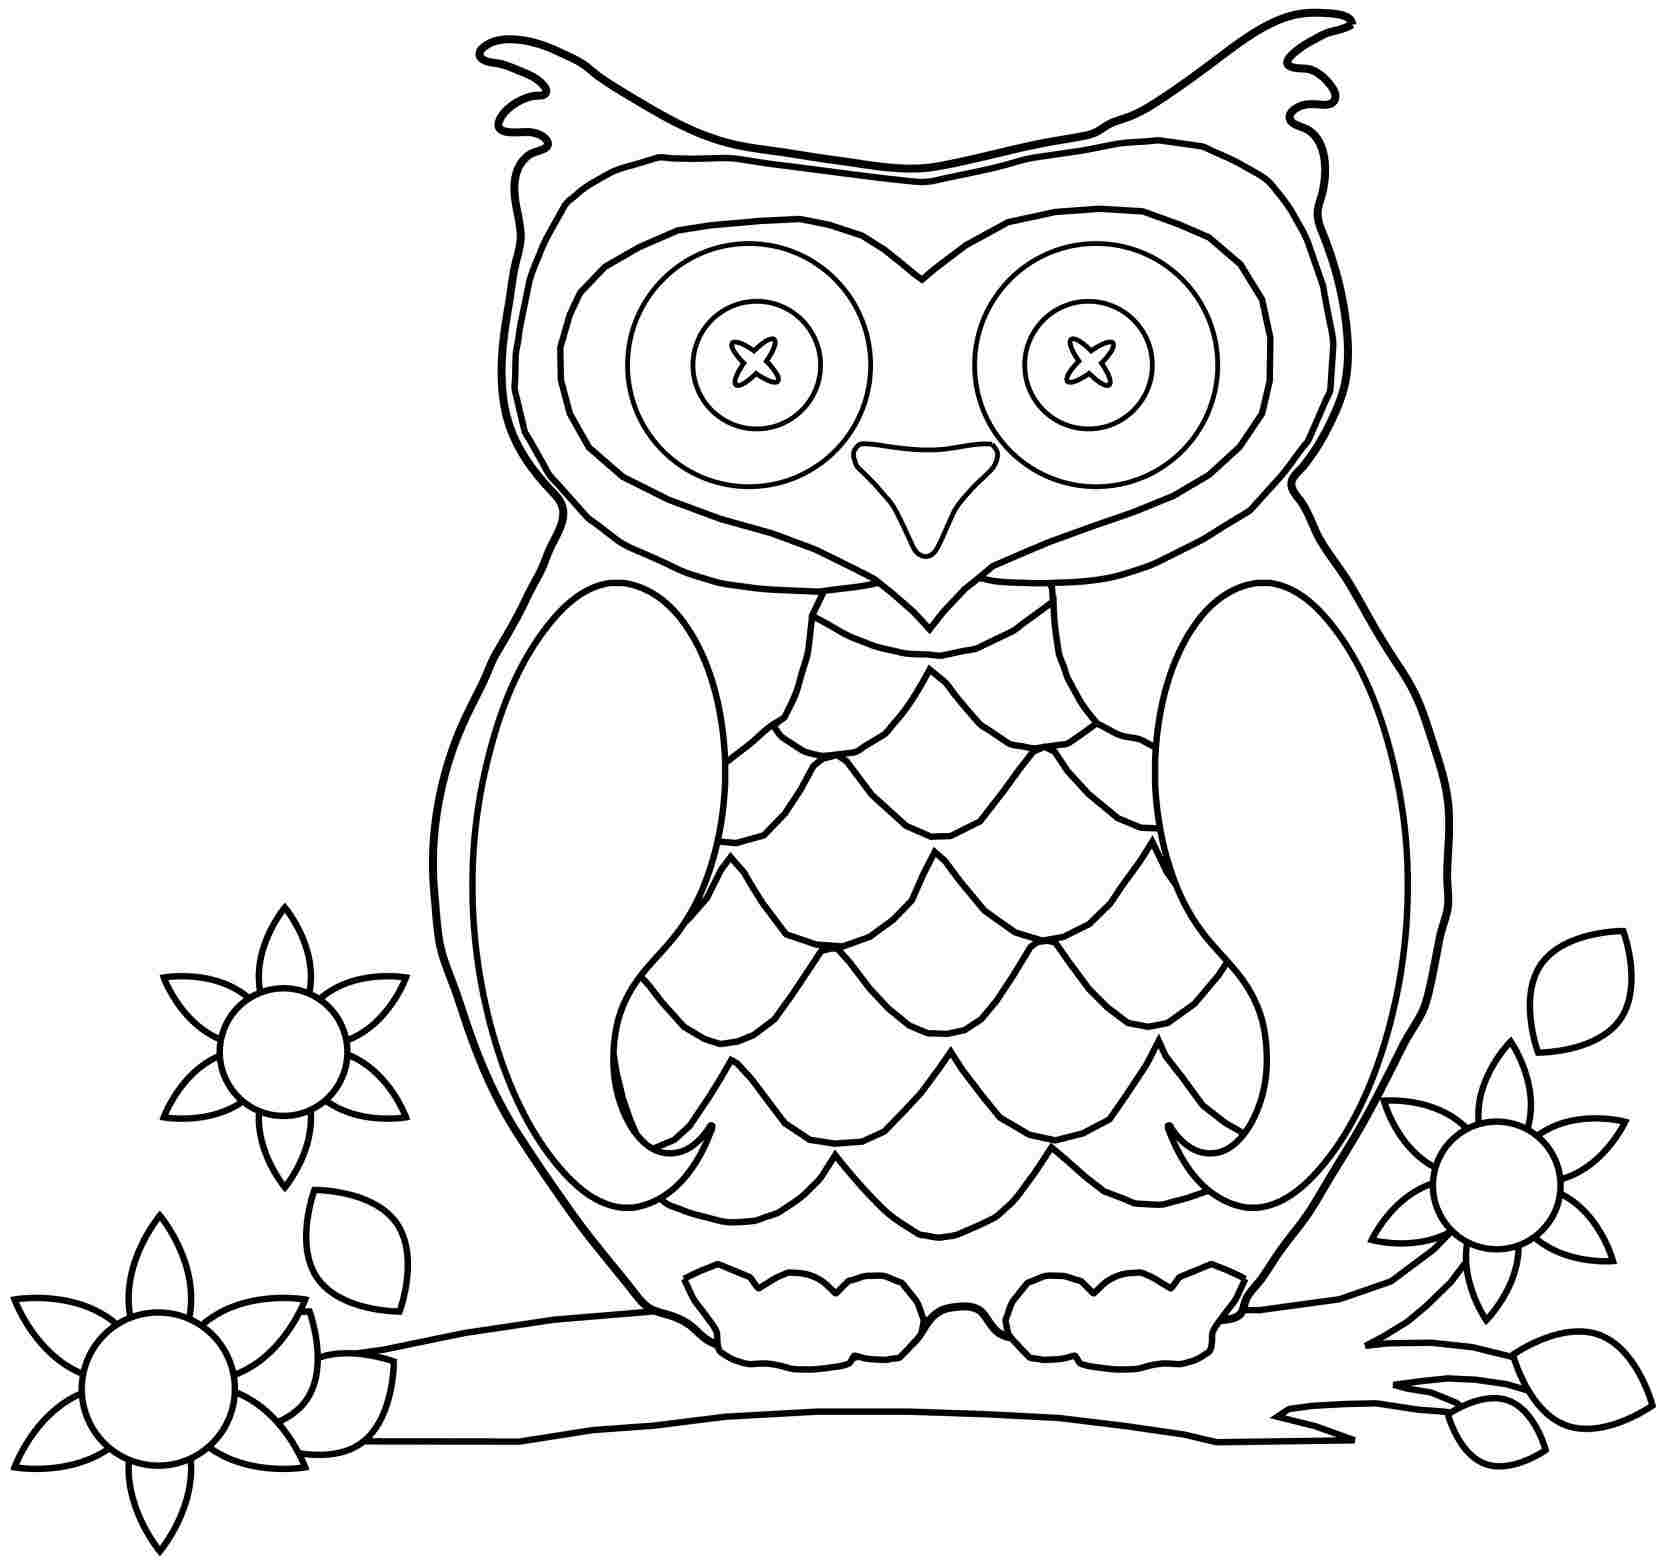 Custom Coloring Pages - Helpful Custom Coloring Pages From S 1203 Unknown Collection